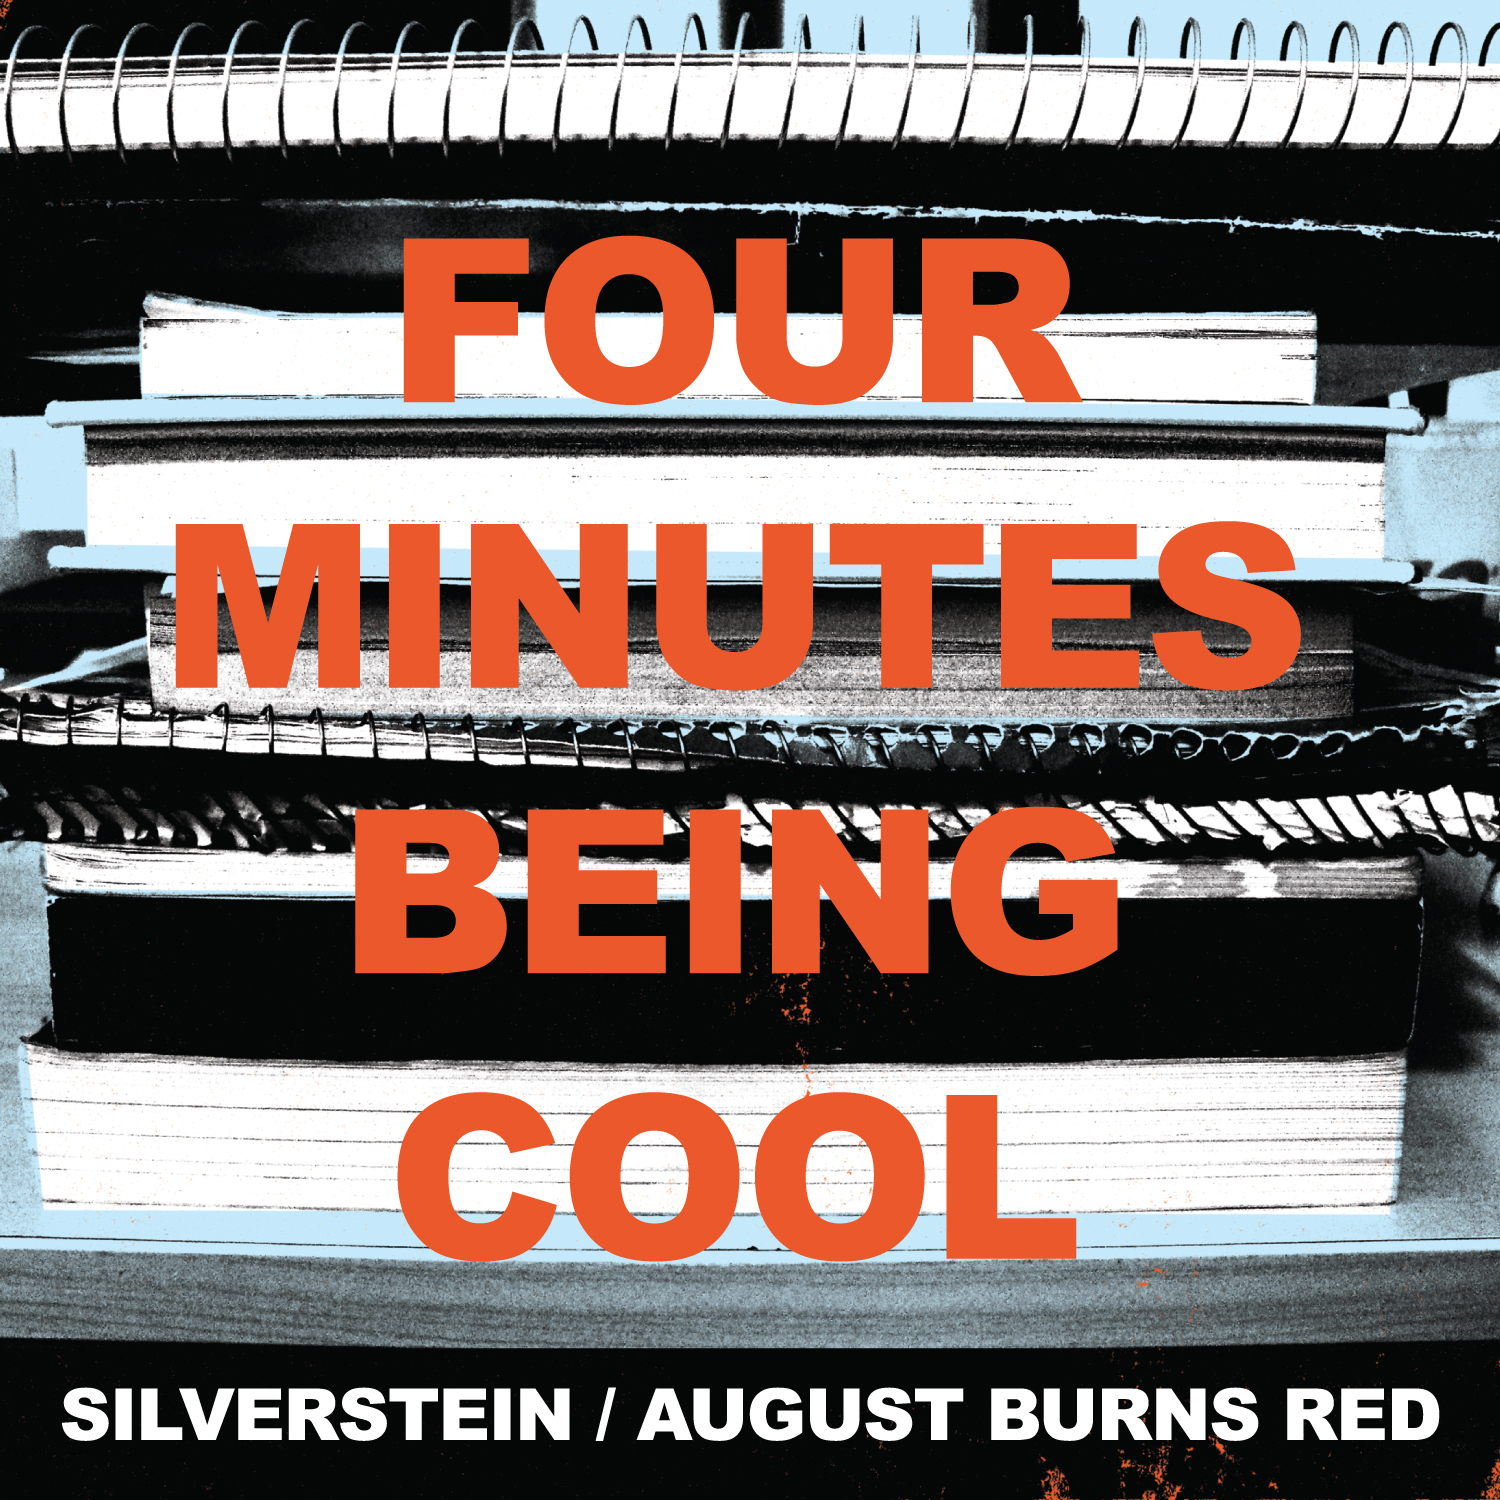 Silverstein/August Burns Red, 'Four Minutes Being Cool' - Record Store Day | Alternative Press